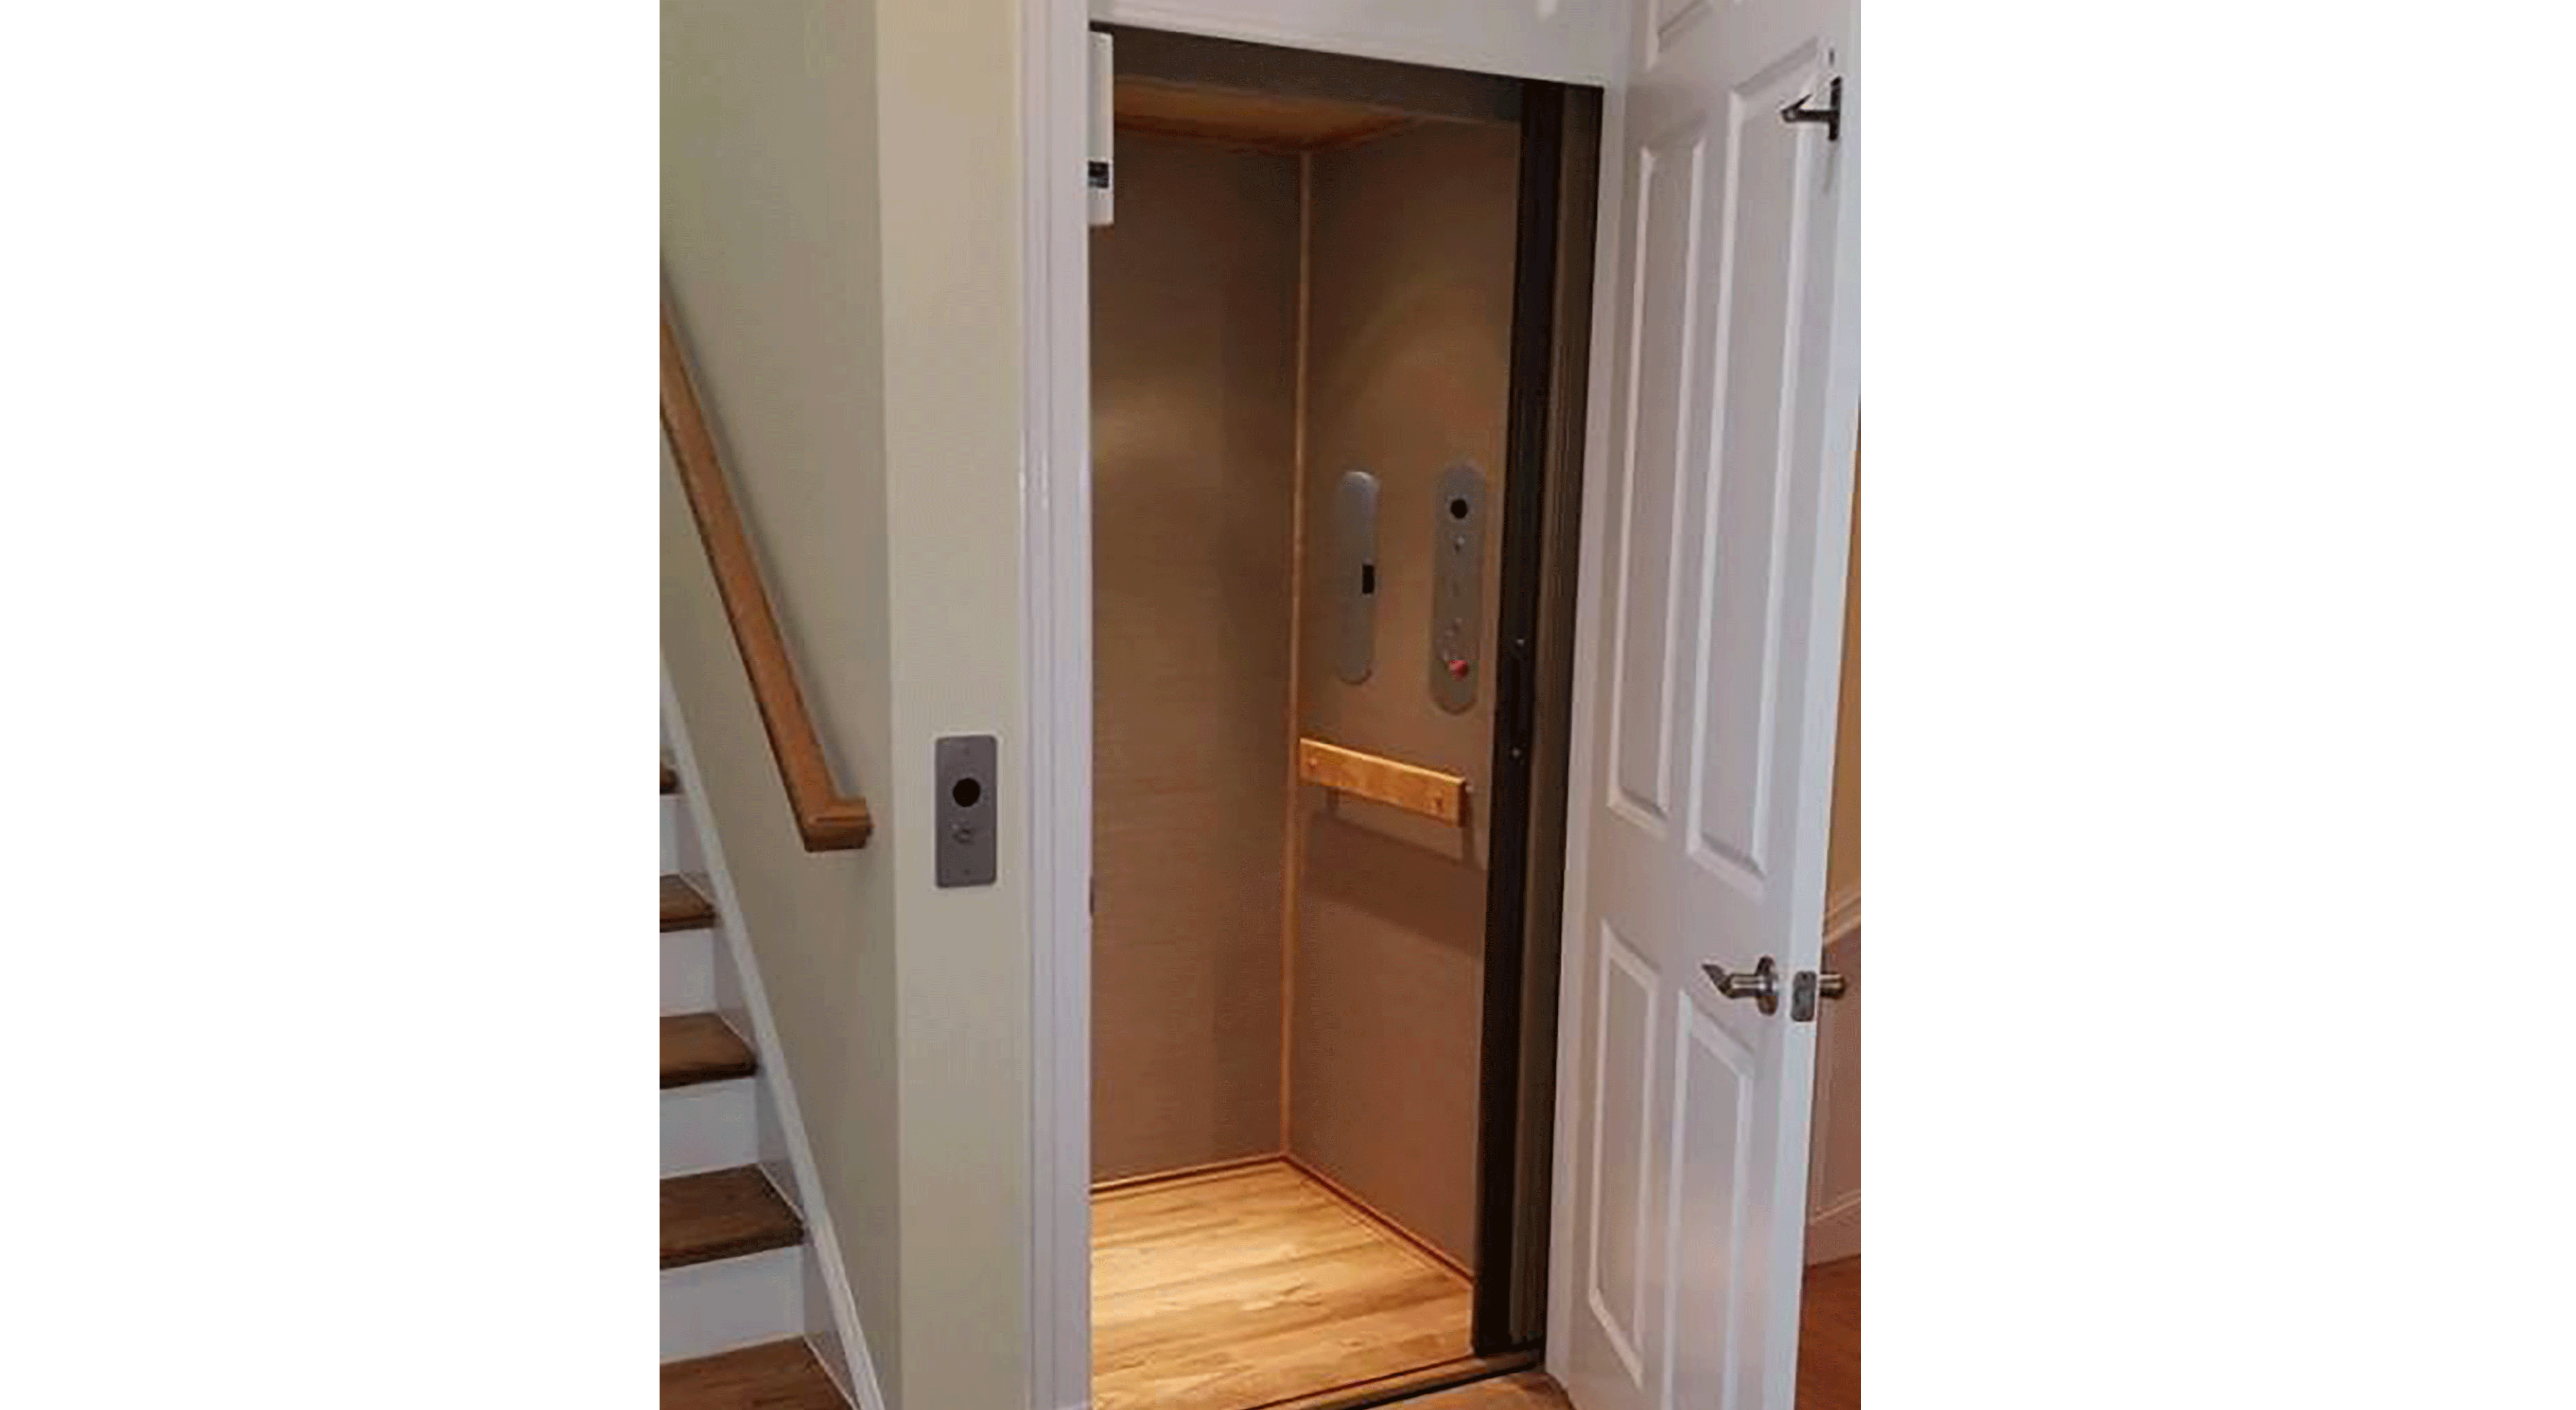 If you are in a home elevator and the power goes out what should you do?